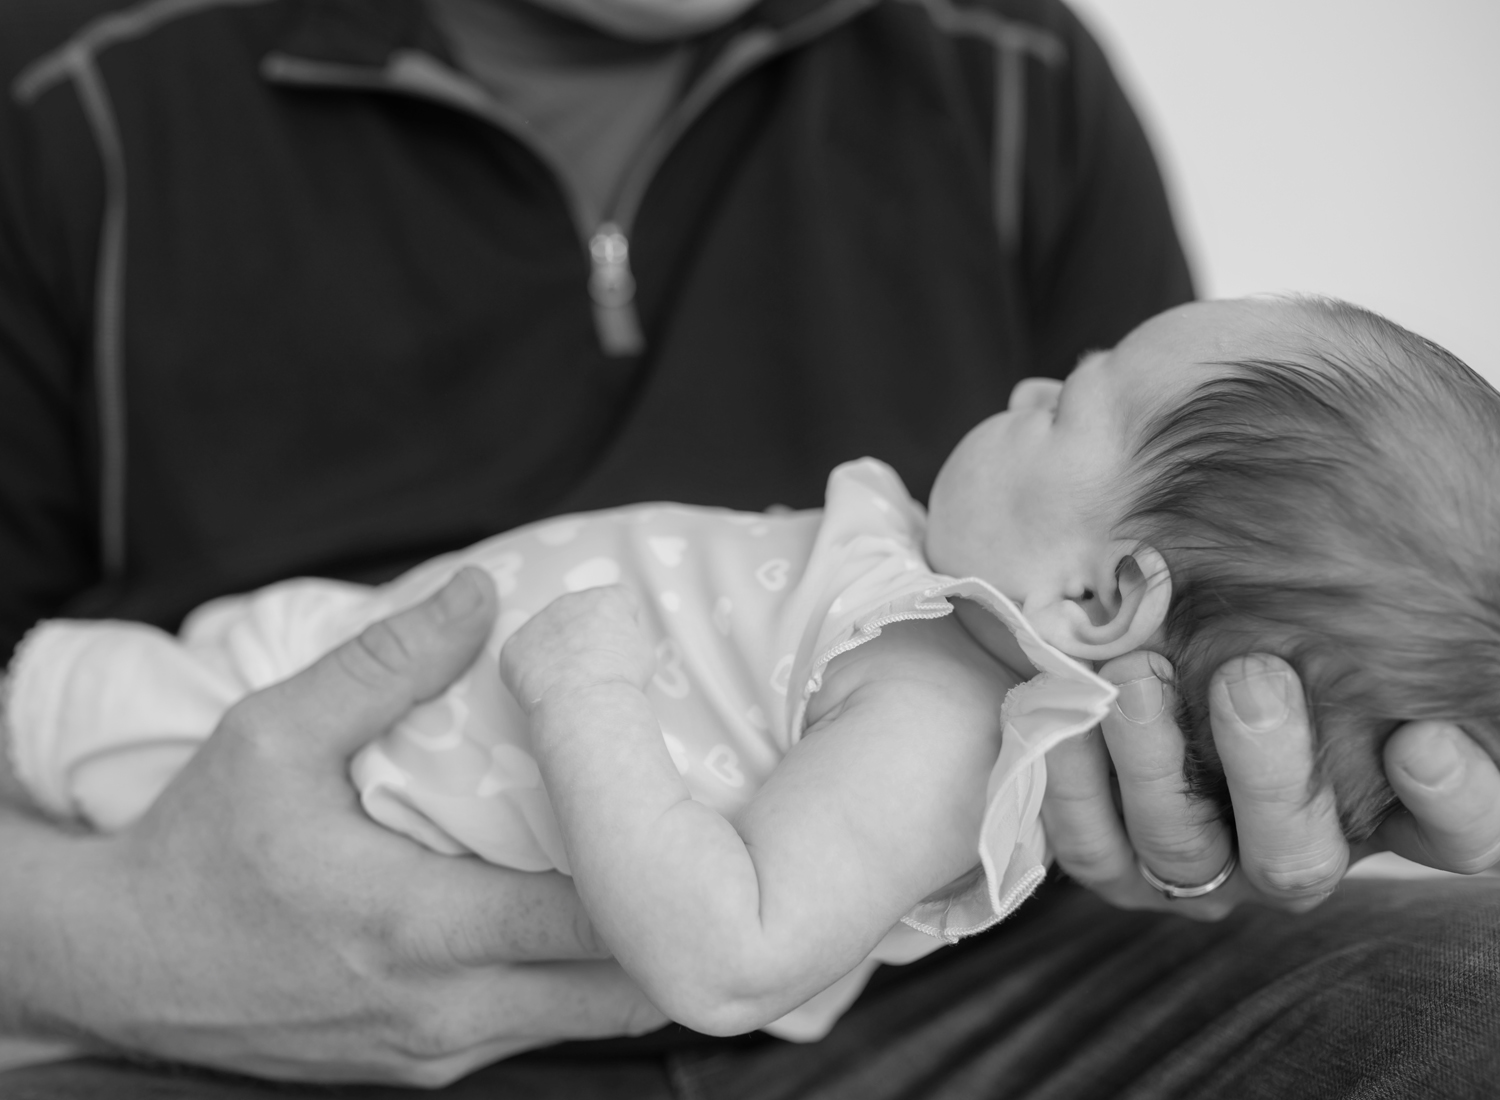 Baby girl being held in her father's hands.